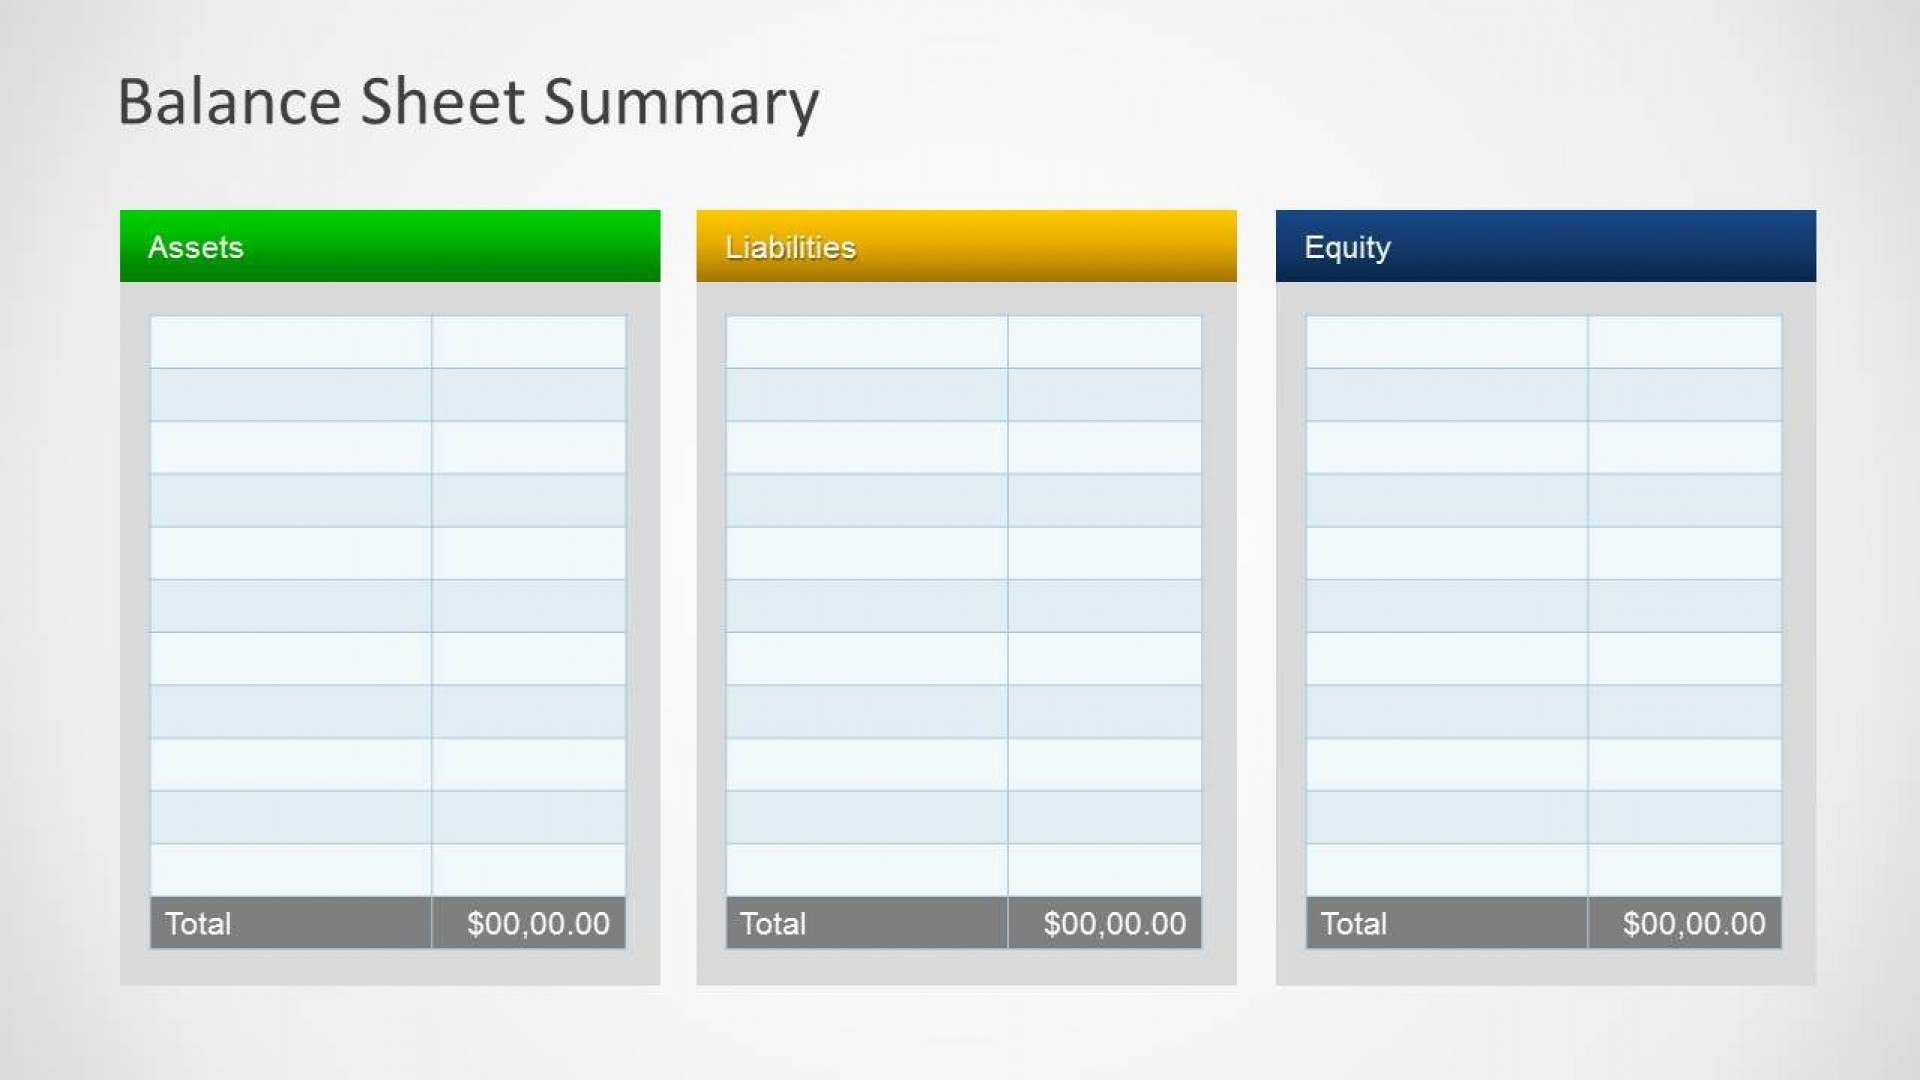 003 Top Simple Balance Sheet Template High Def  Example For Small Busines Sample A Church1920